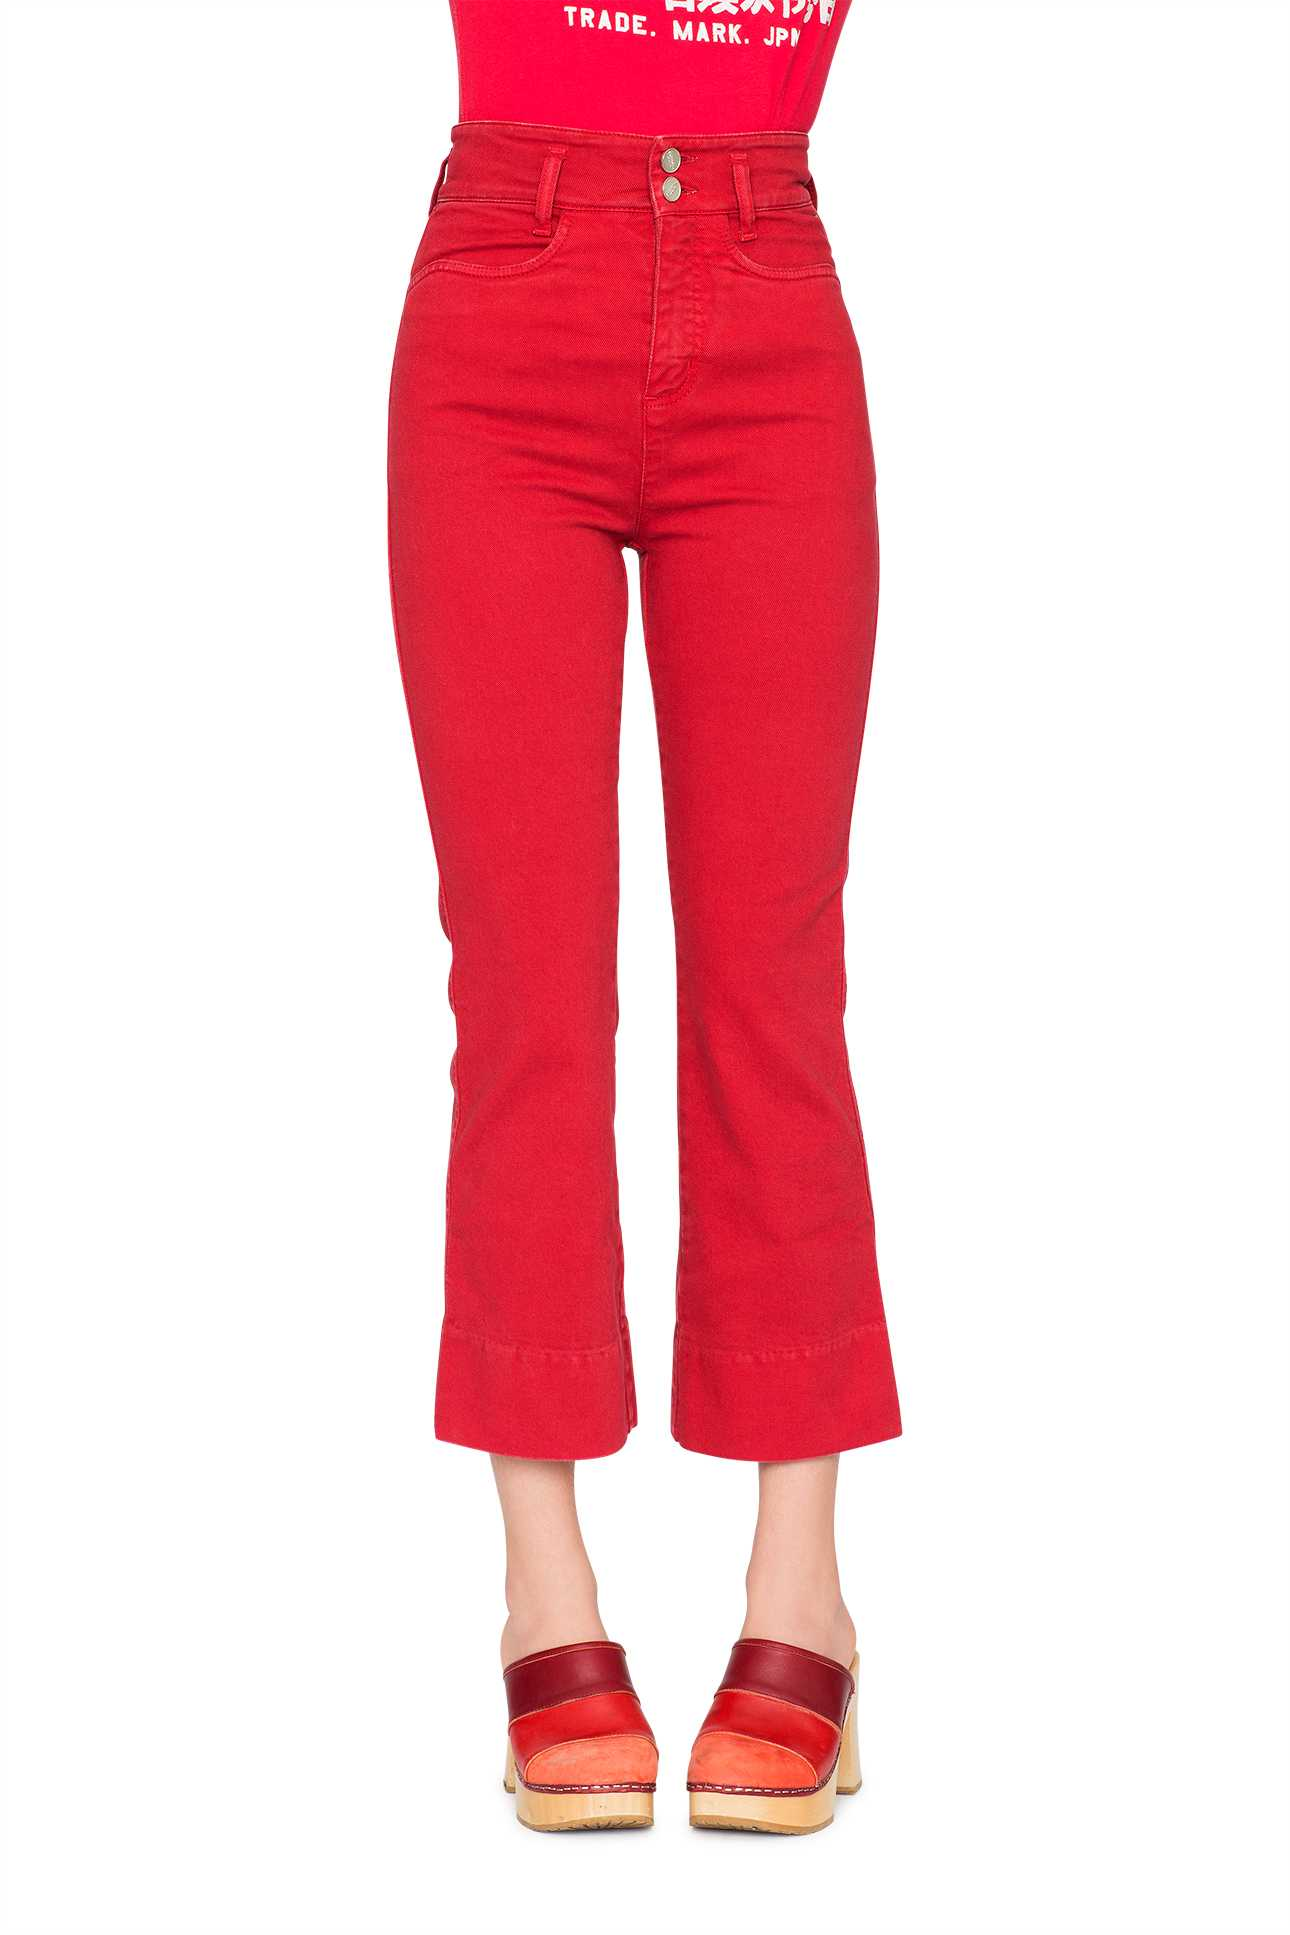 Short Boot Cut Pants Denim Dark Red